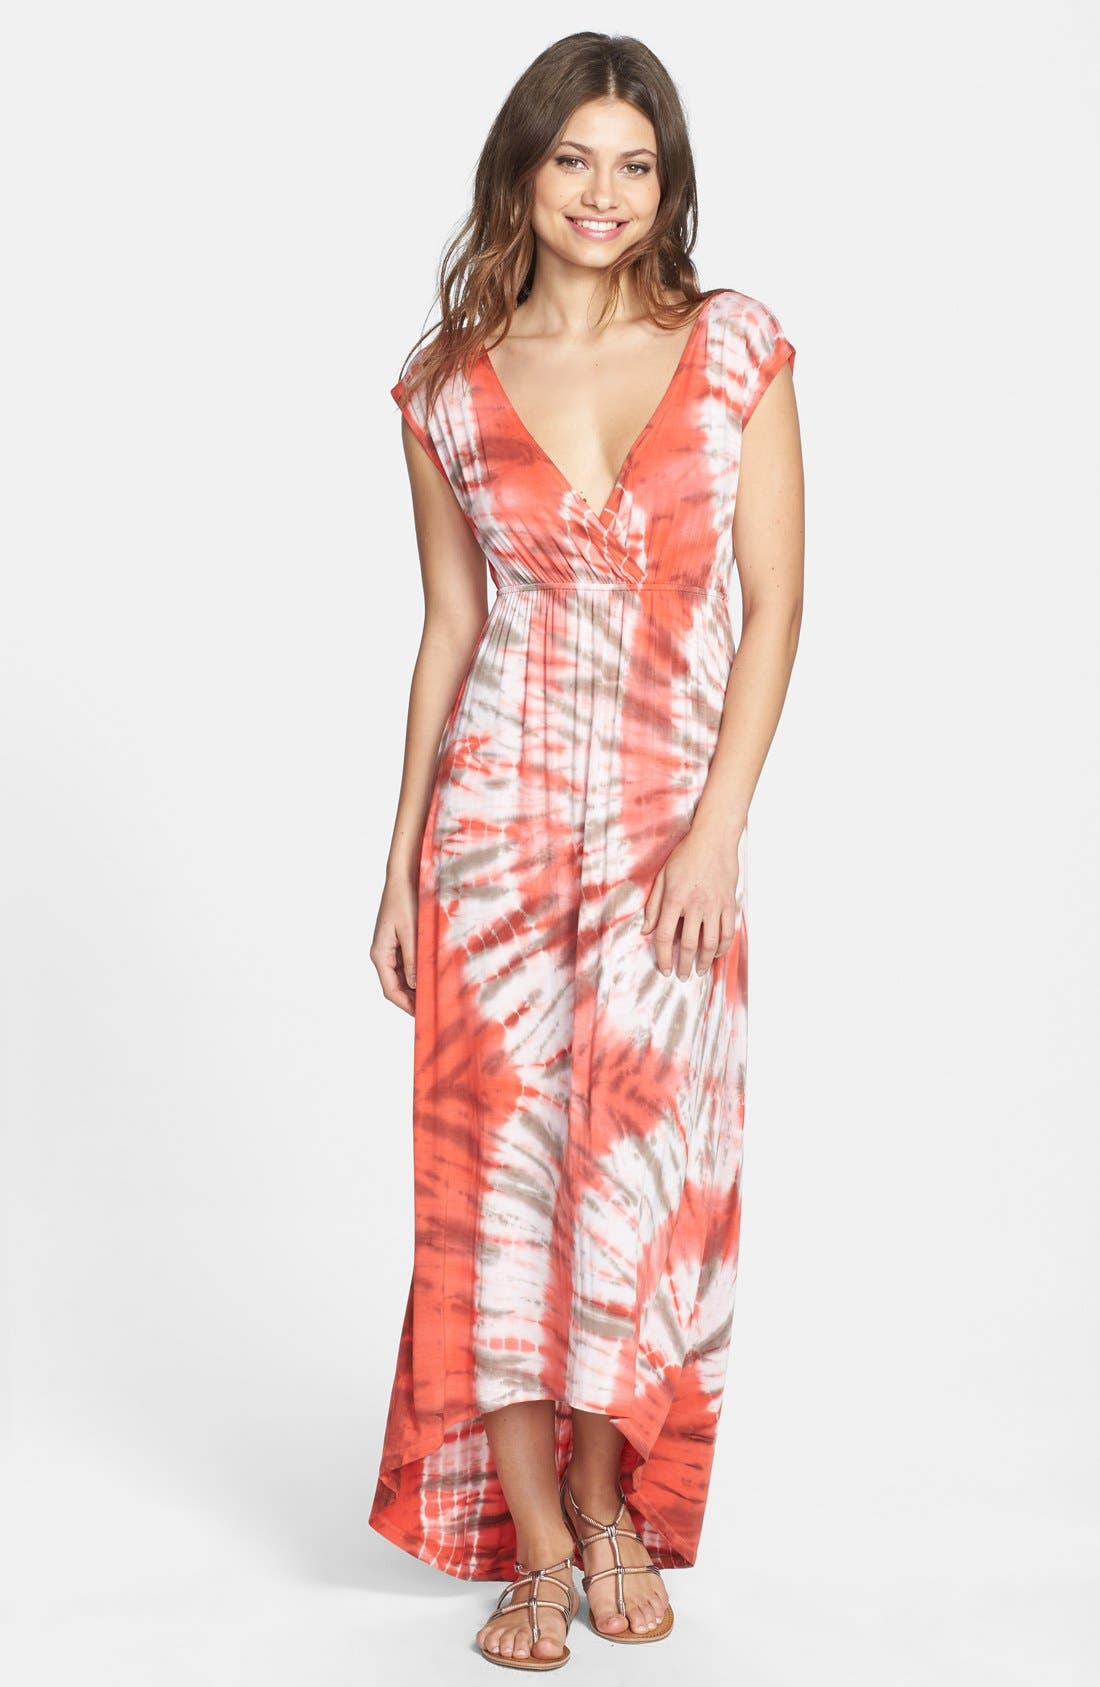 Alternate Image 1 Selected - Felicity & Coco 'Effron' Tie Dye Maxi Dress (Nordstrom Exclusive)